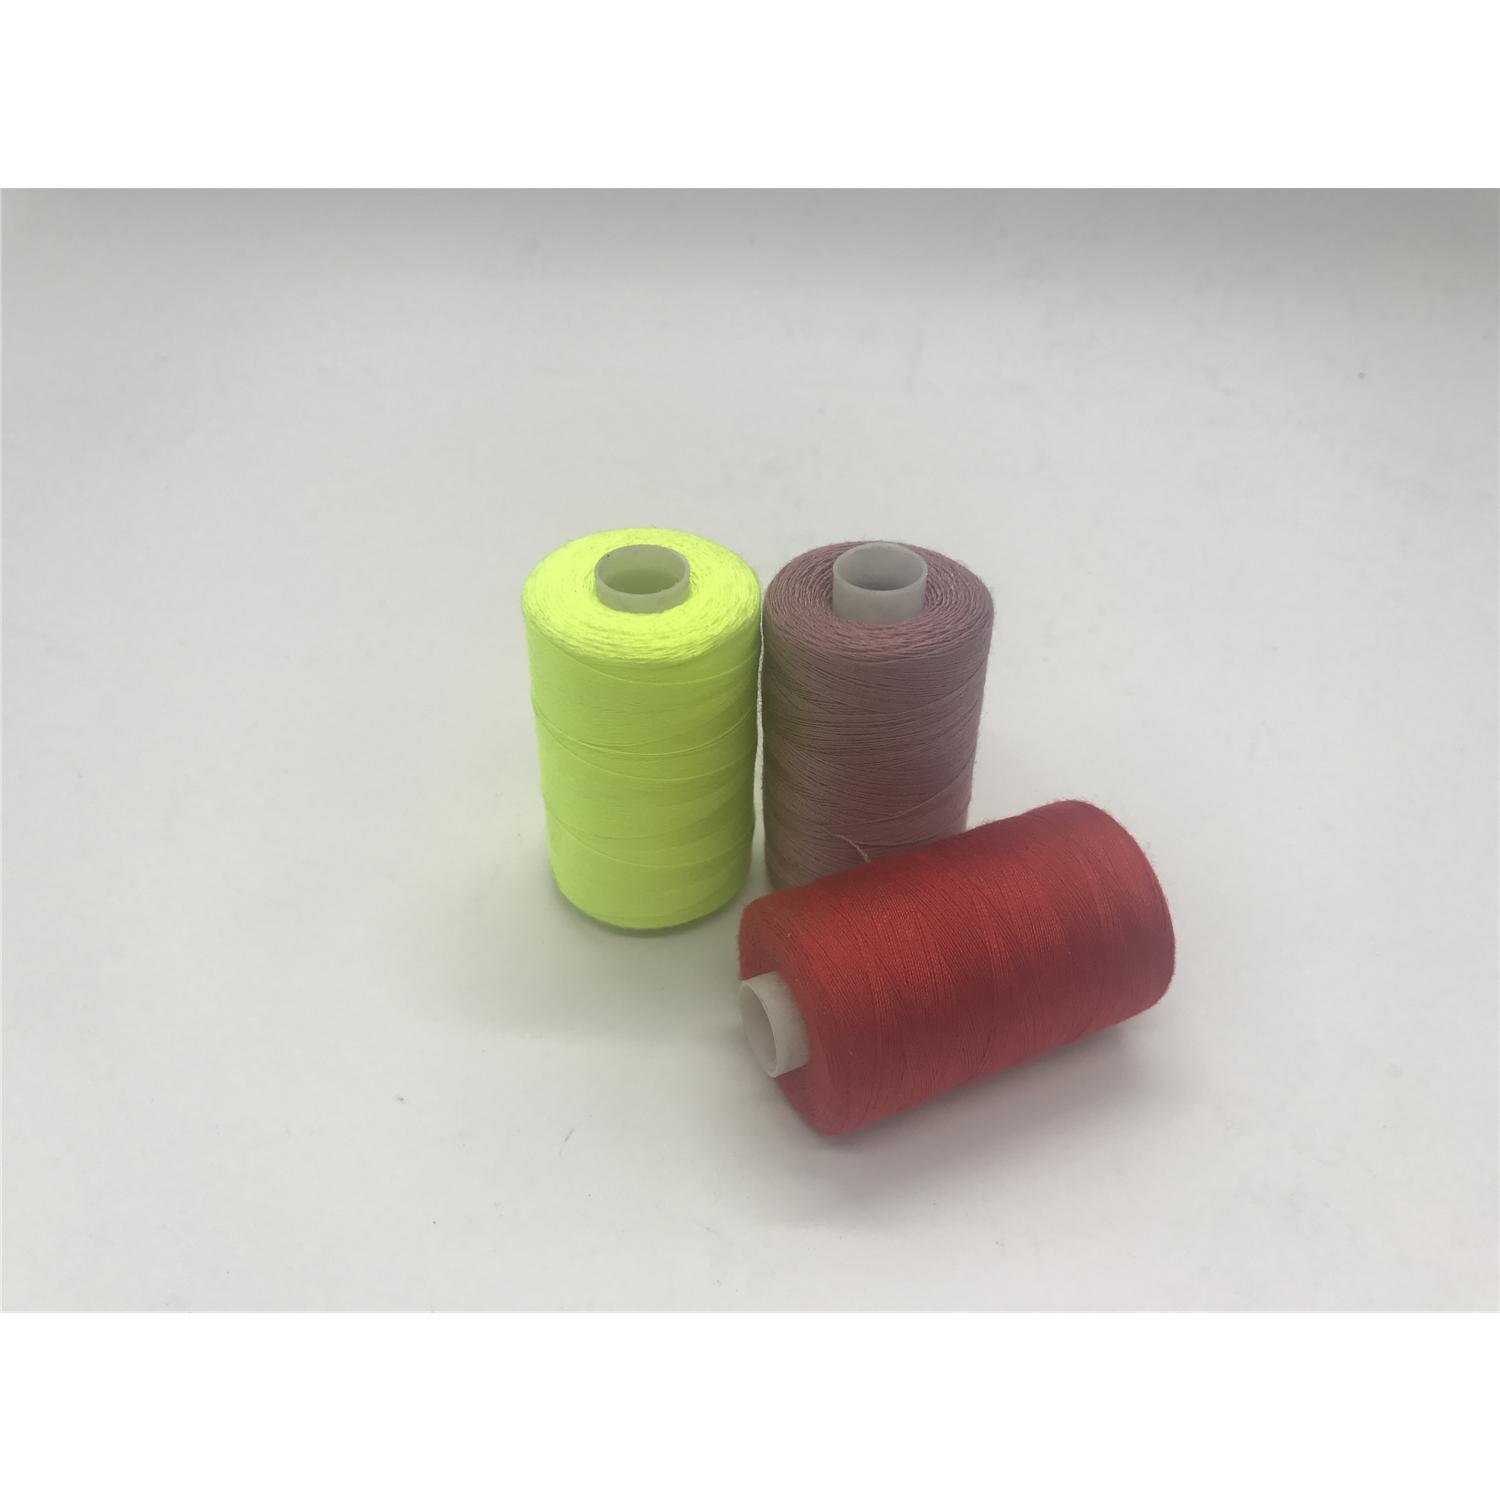 Shanfa 100% Polyester Sewing Thread 40s/2 1000yds